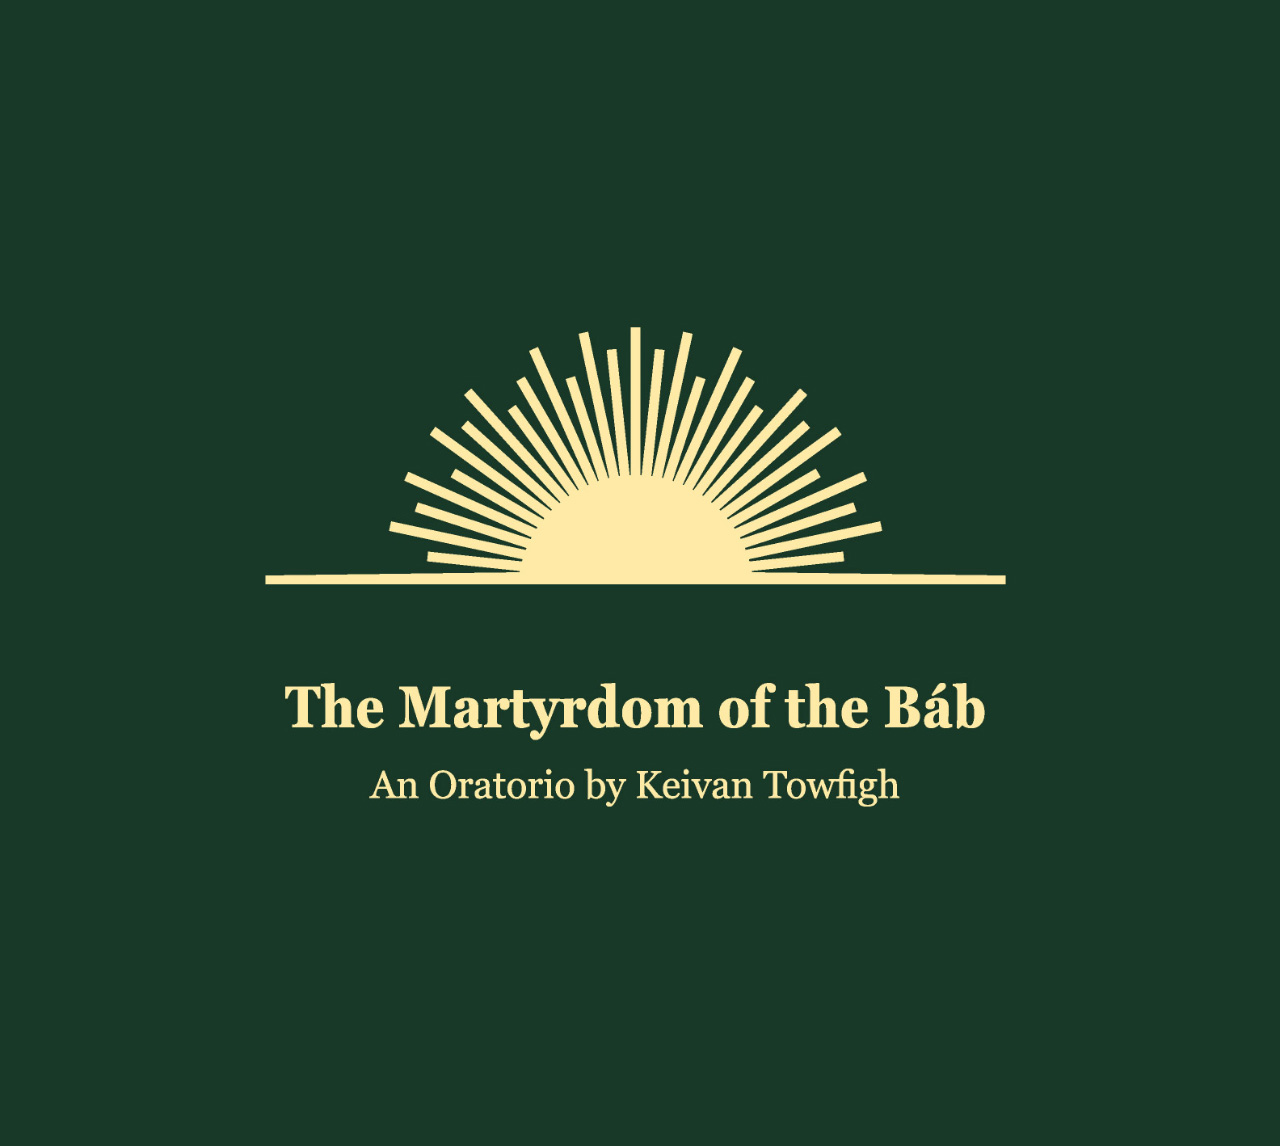 CD cover of The Martyrdom of the Báb